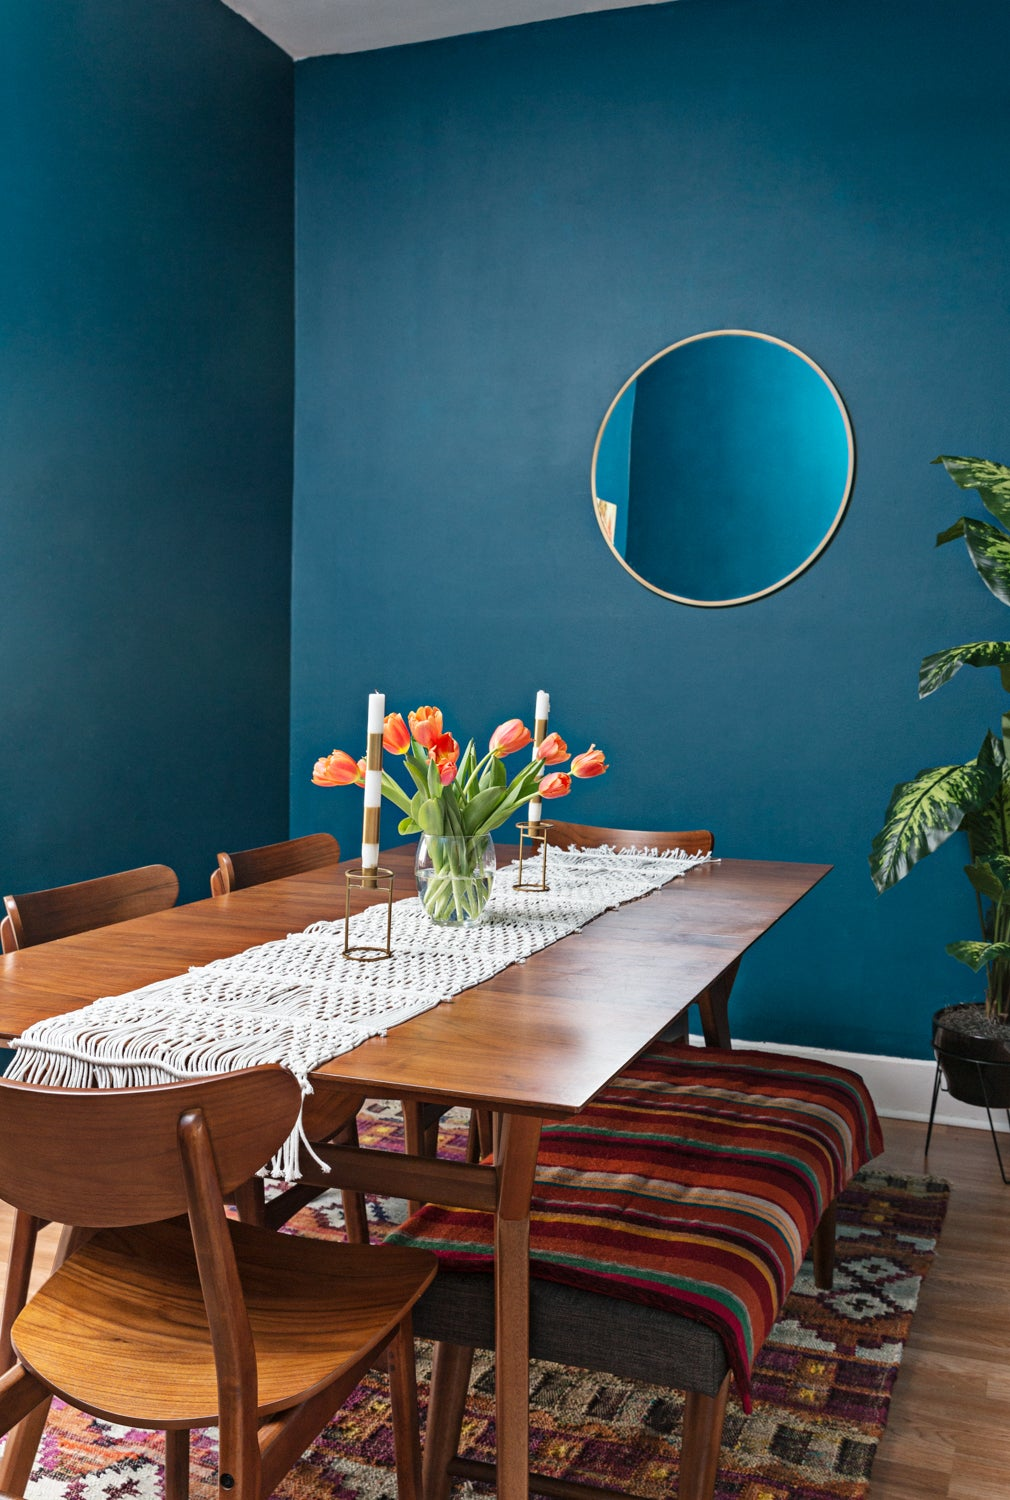 The Best Blue Paint Colors, According to Leanne Ford, Emily Henderson, and More